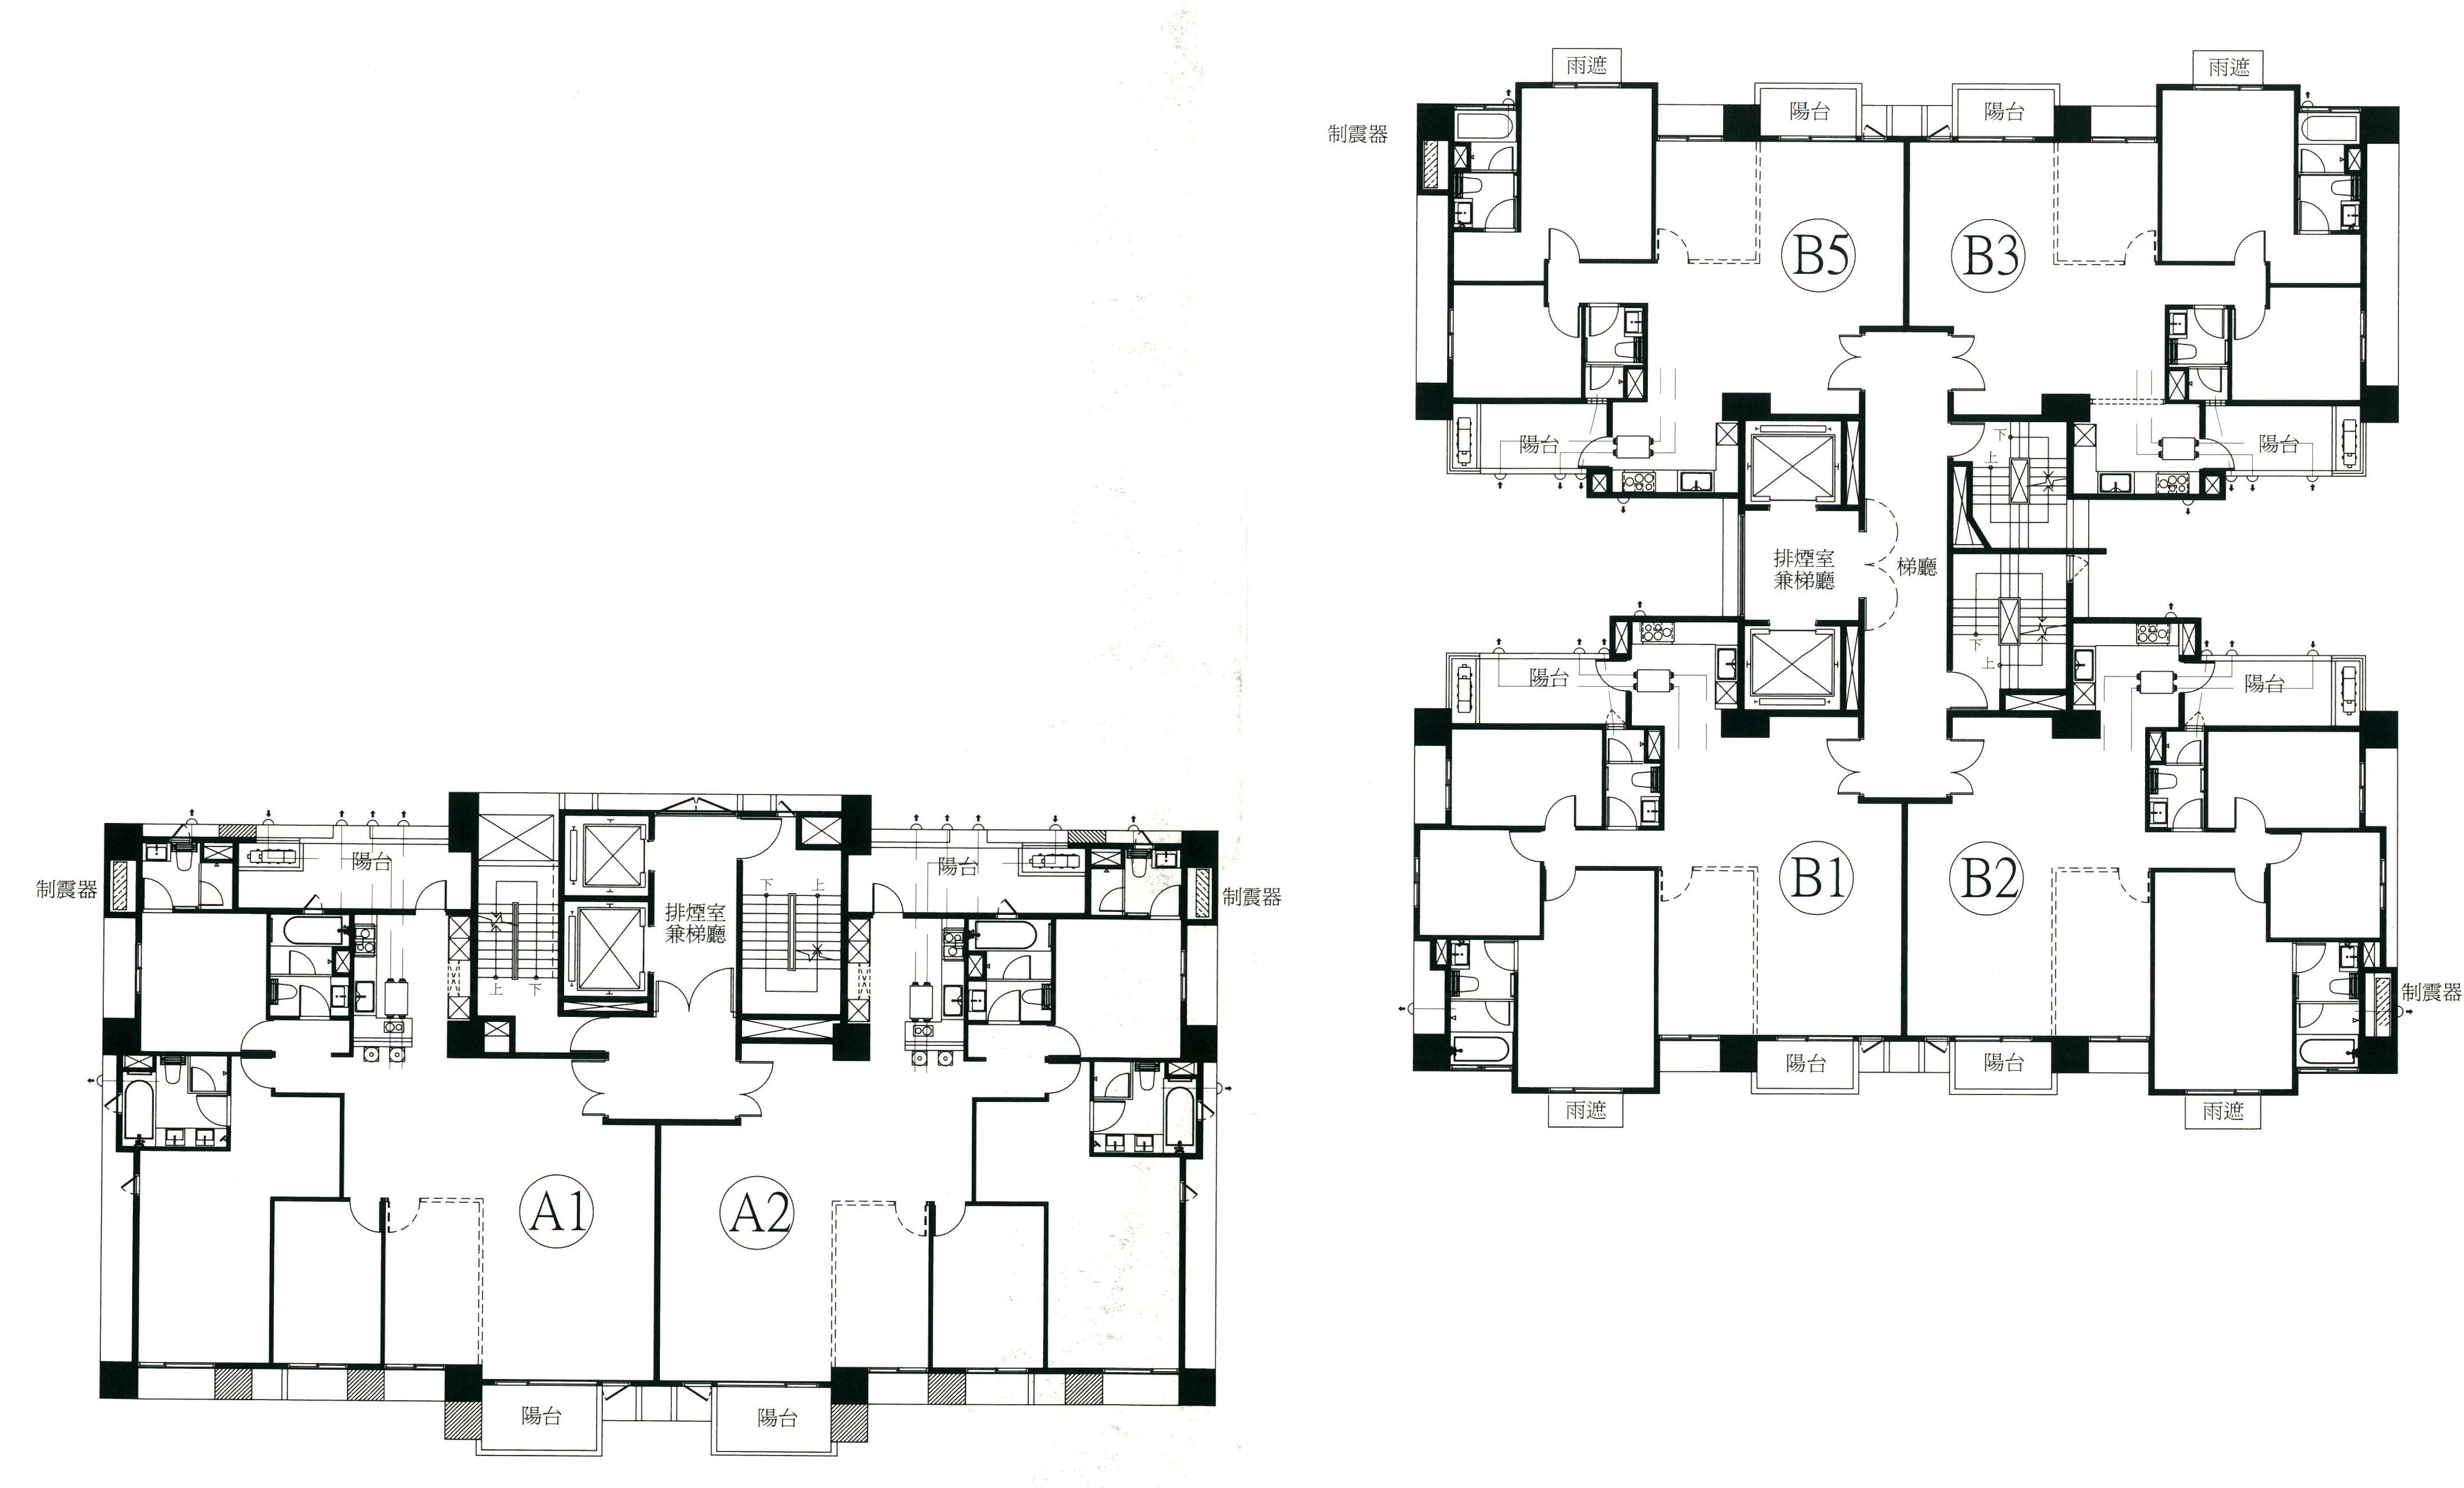 pin by sam tseng on 103arch tw高雄住宅 上傳 floor plans